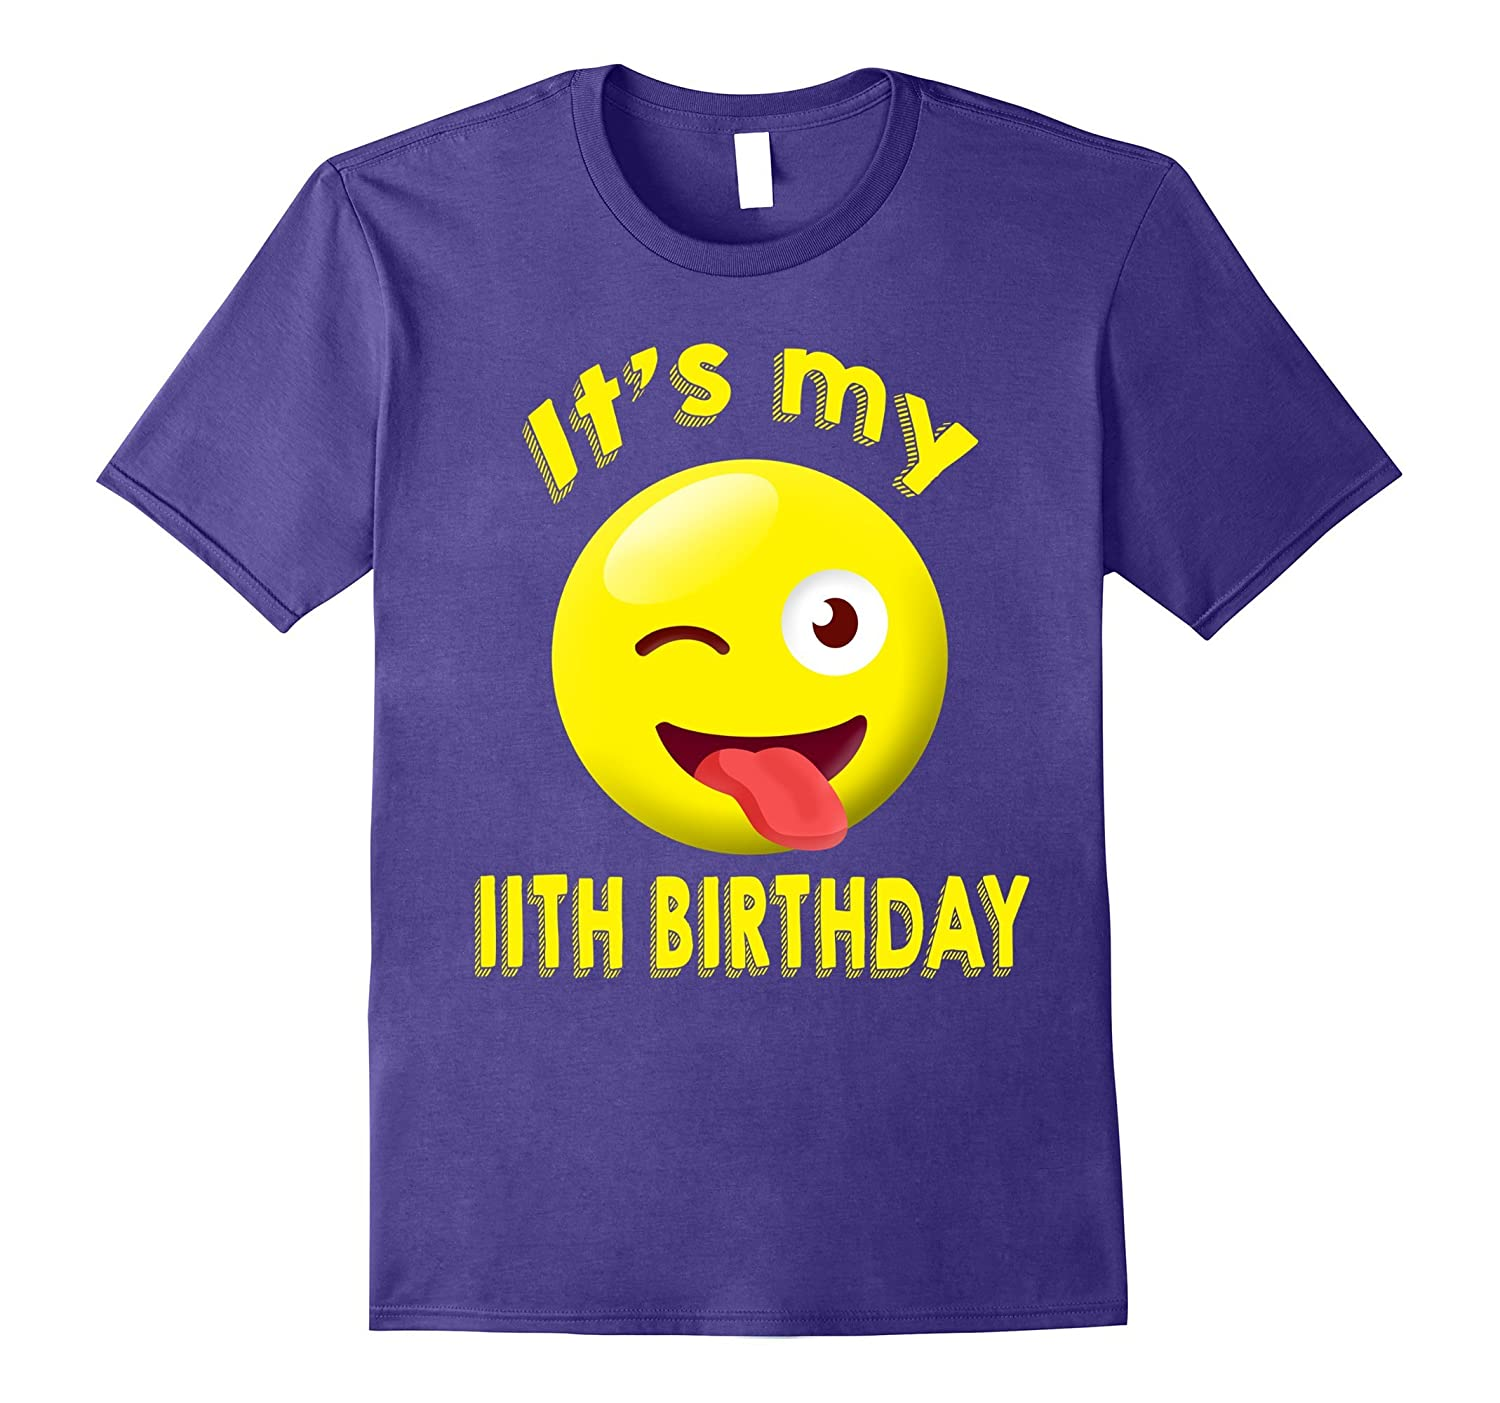 11th birthday emoji It's my 11th birthday-Rose